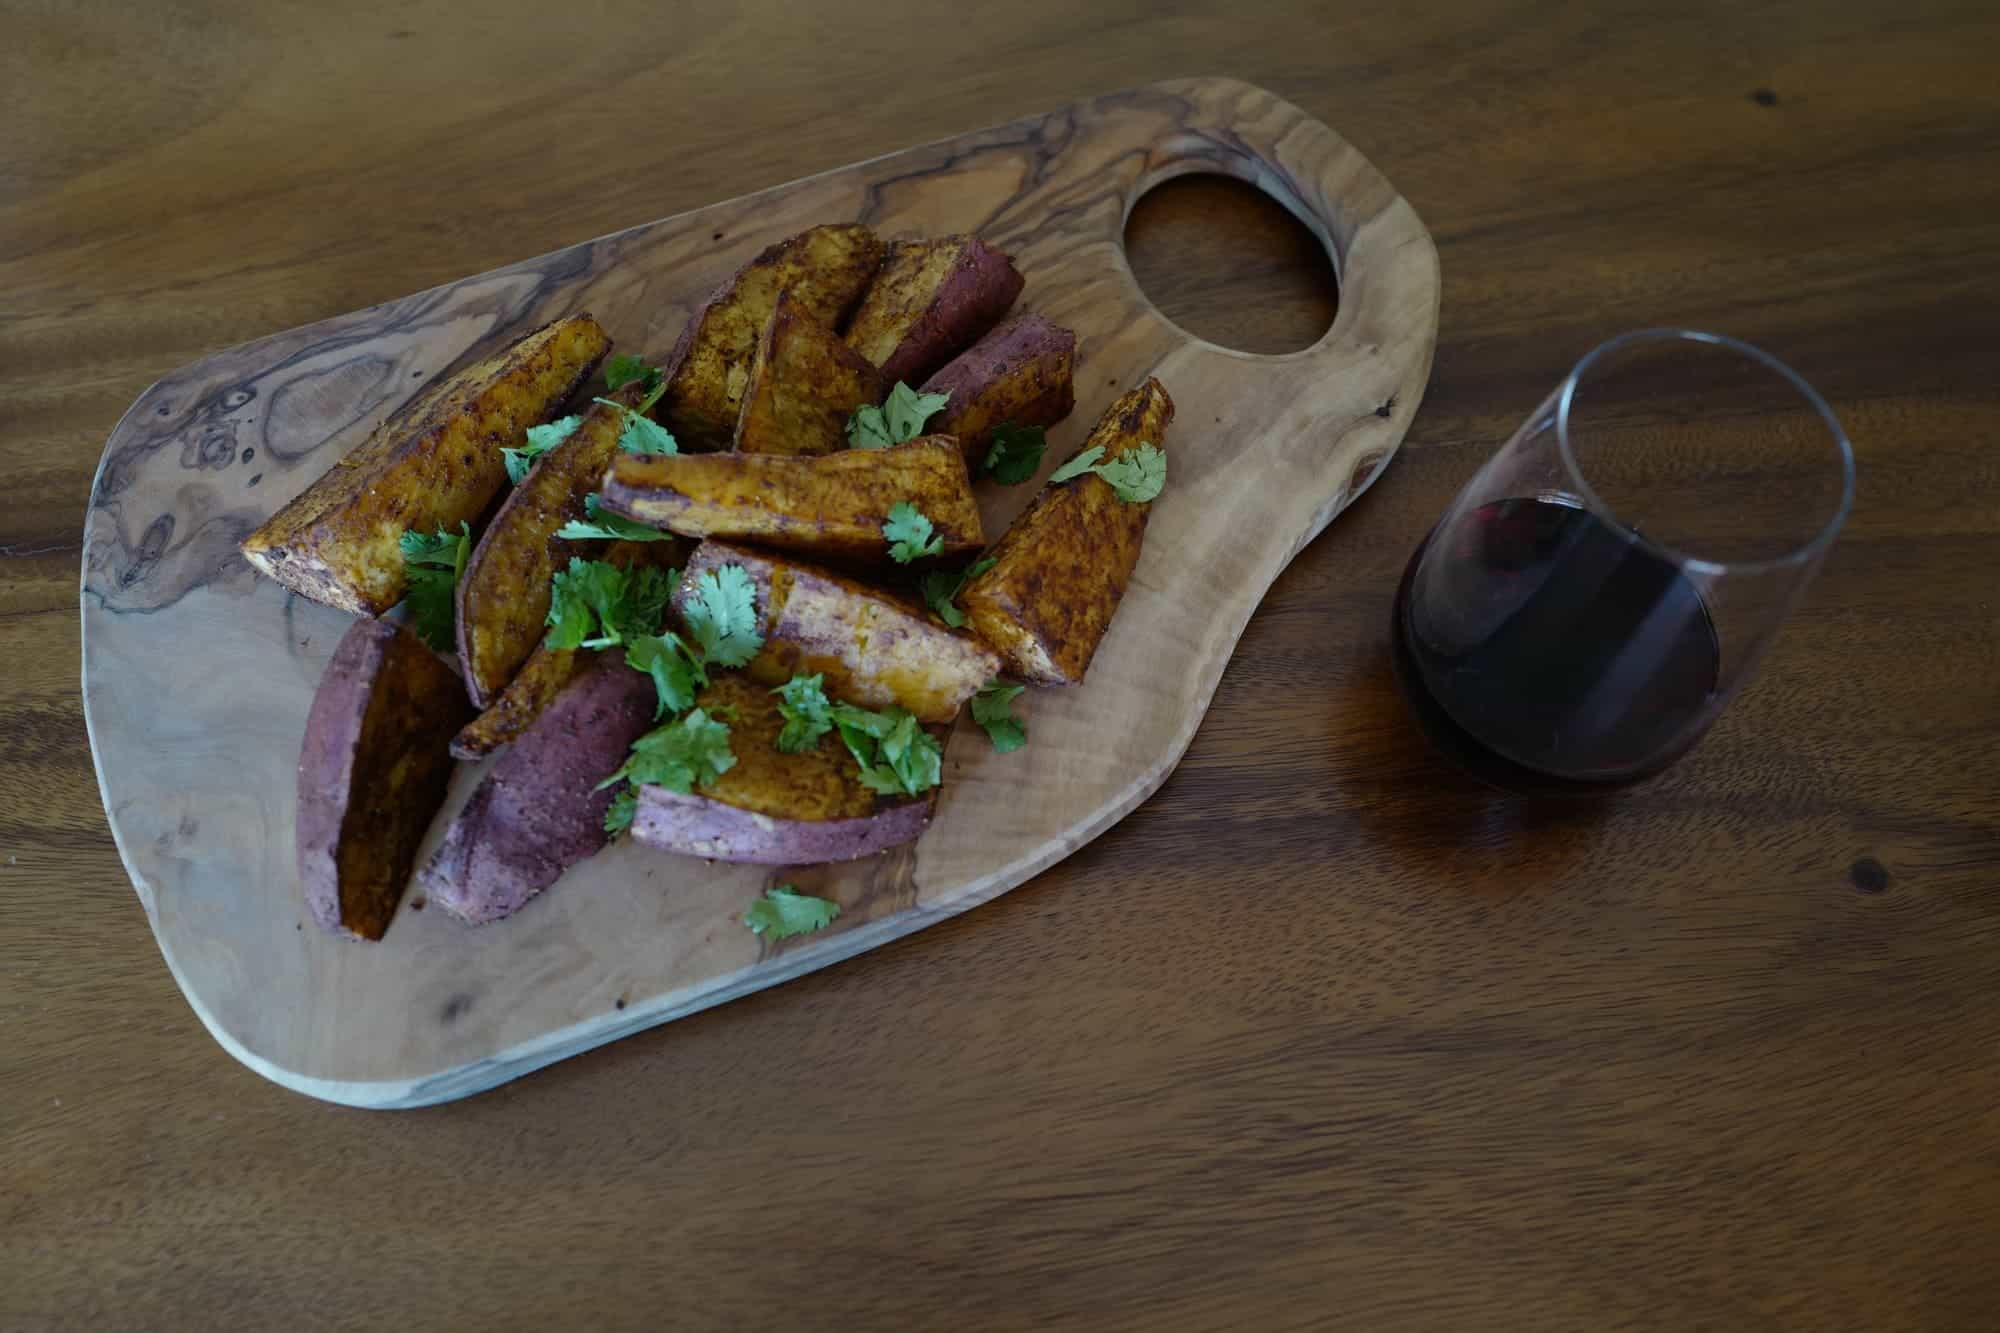 Roasted Japanese sweet potato wedges with spices on a wooden board next to a glass of red wine by Foodjoya